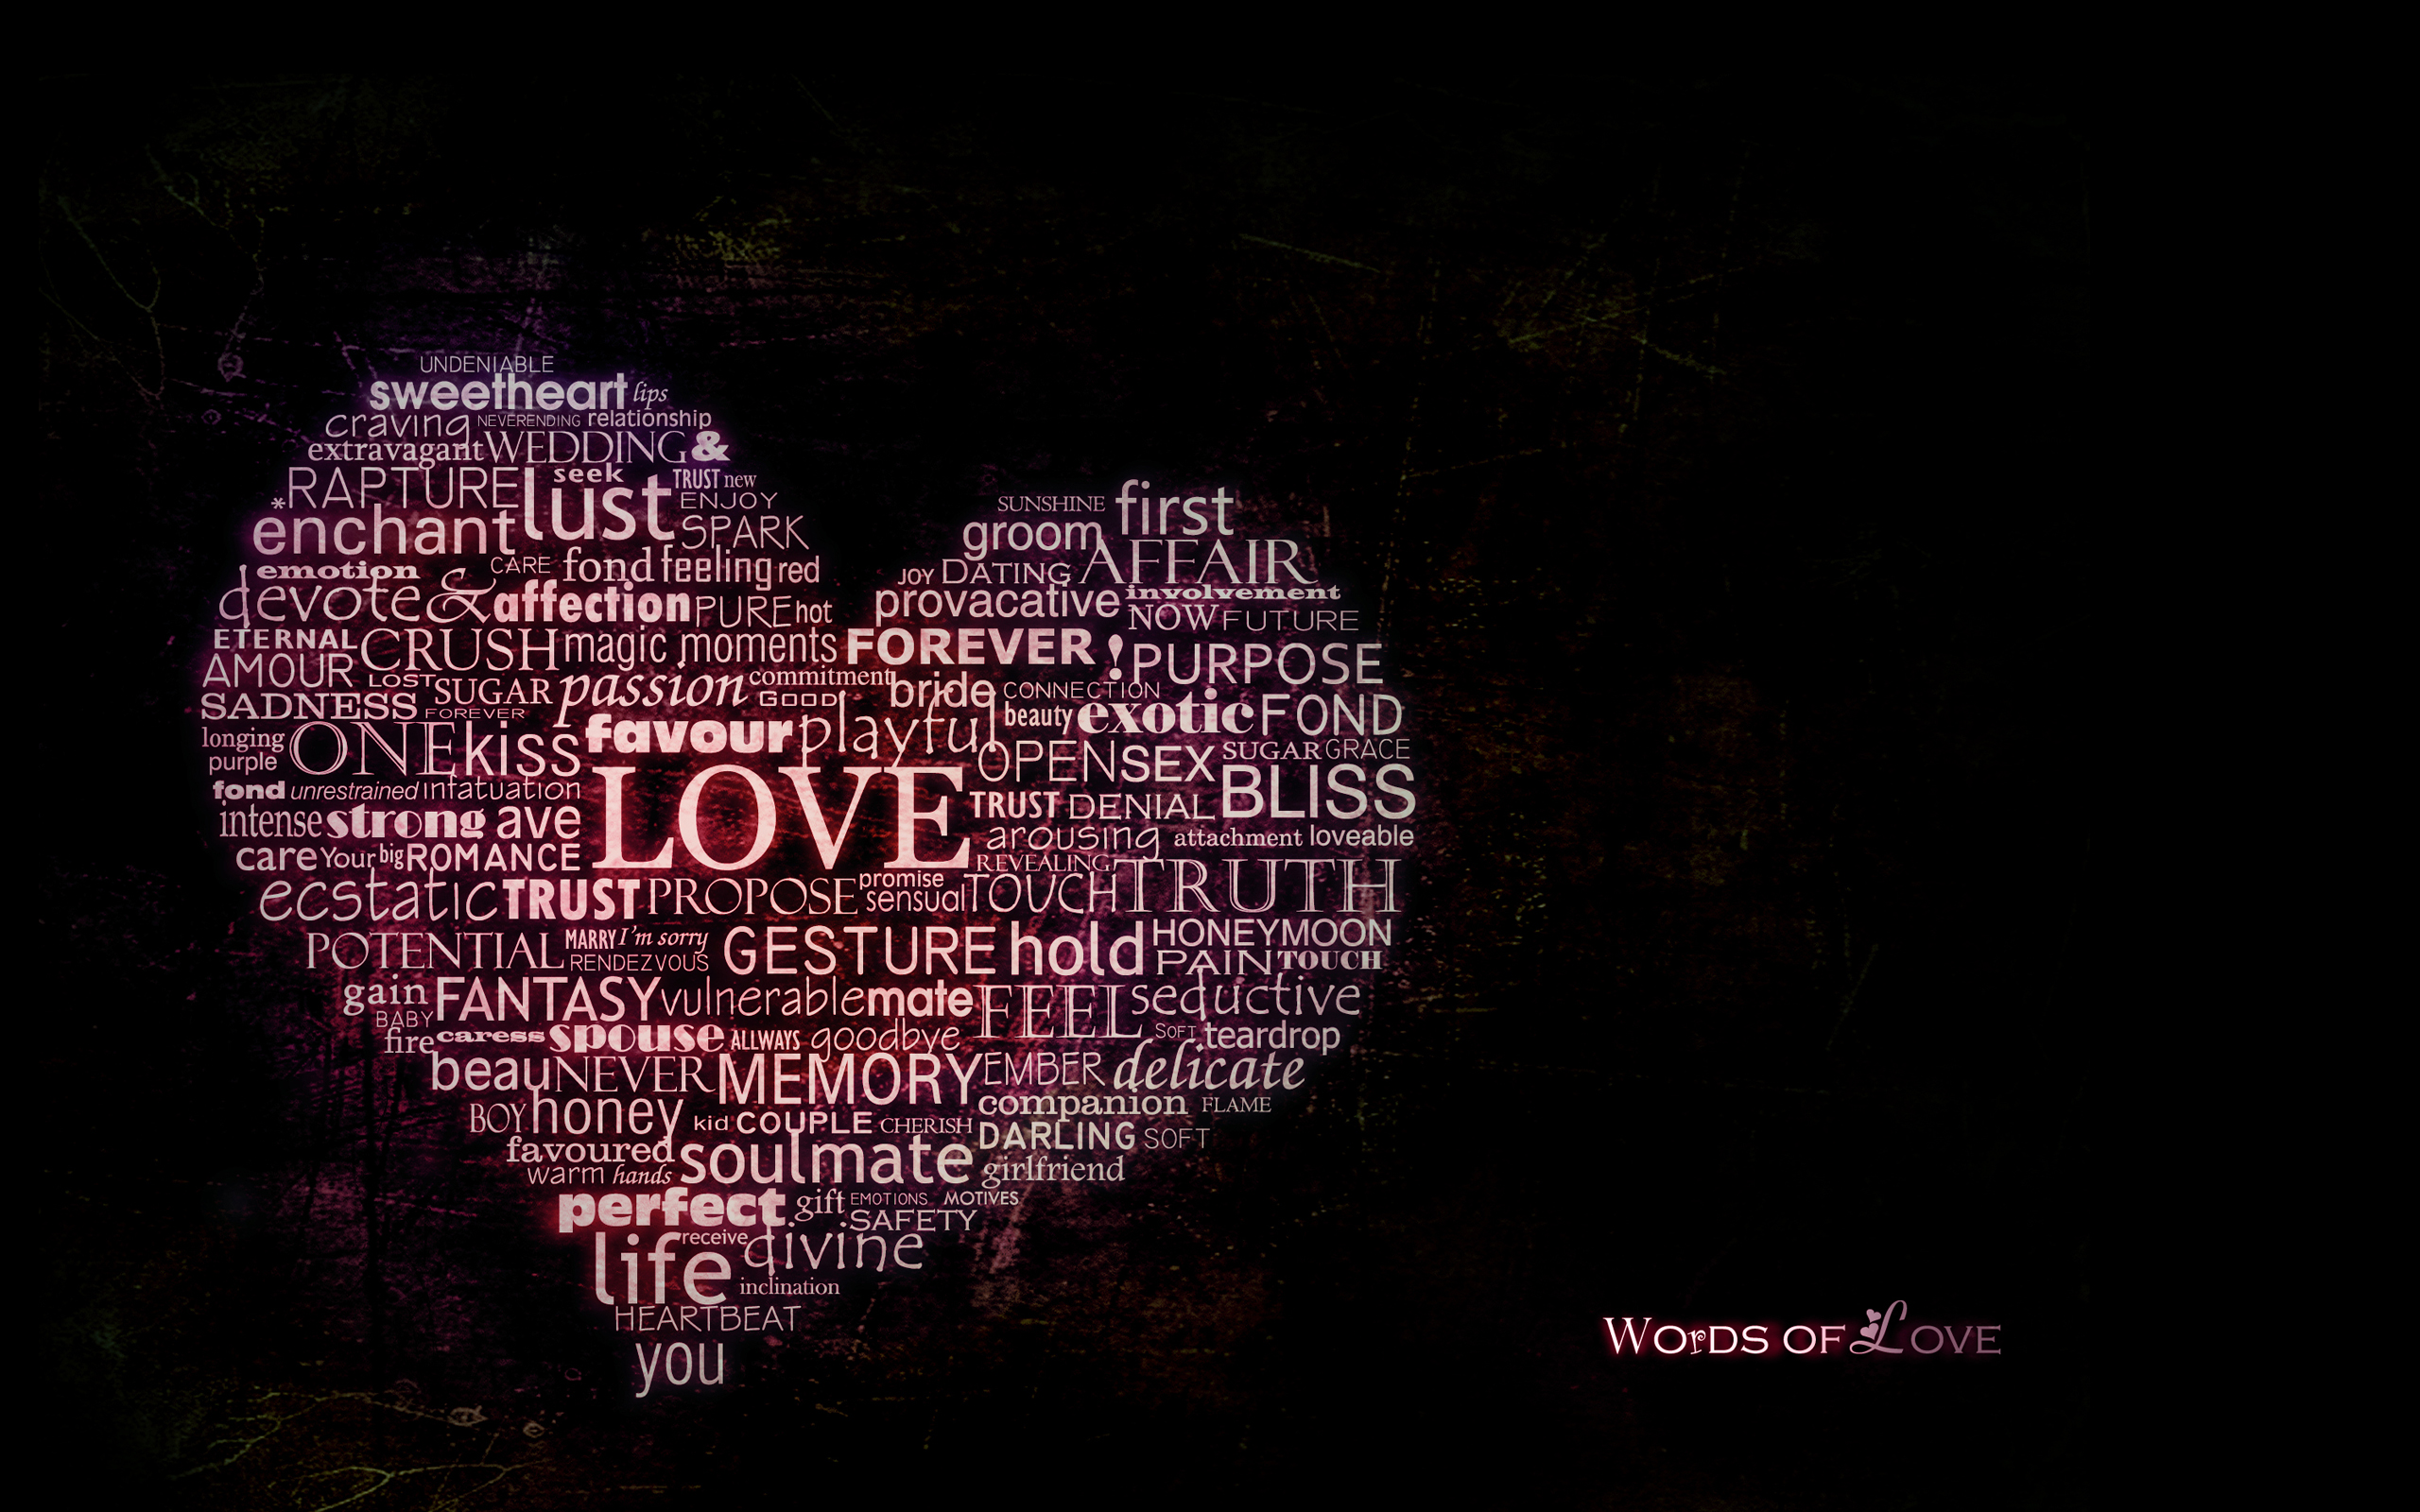 Words of love wallpapers